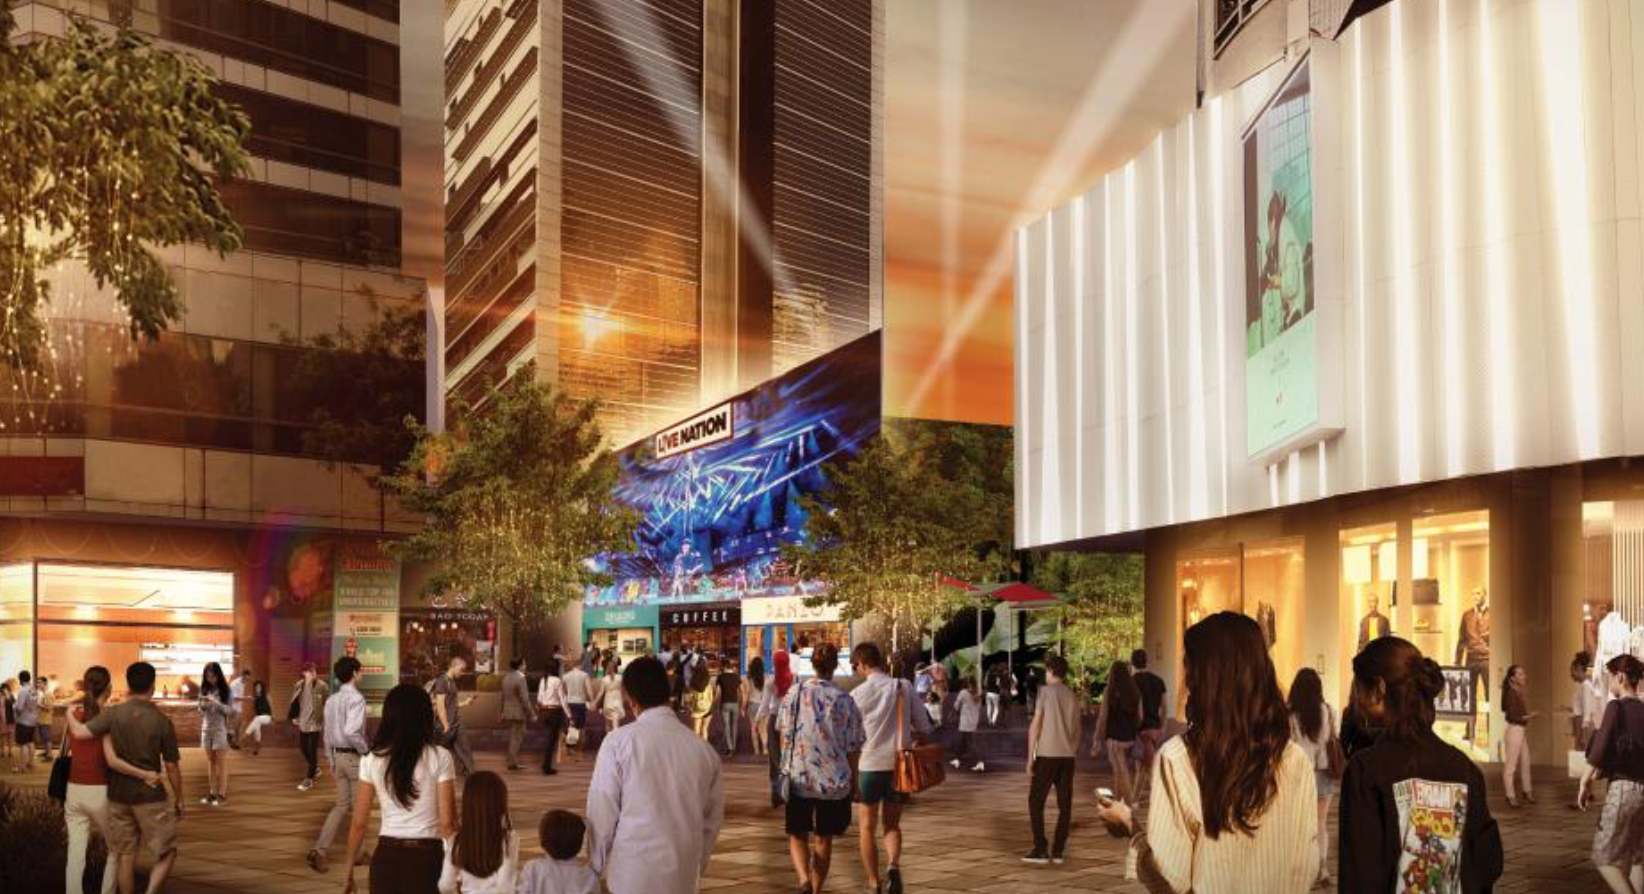 An artist's impression of the Grange Road event space that will be managed by LendLease Global Commercial REIT. (Photo: Lendlease Global Commercial REIT)